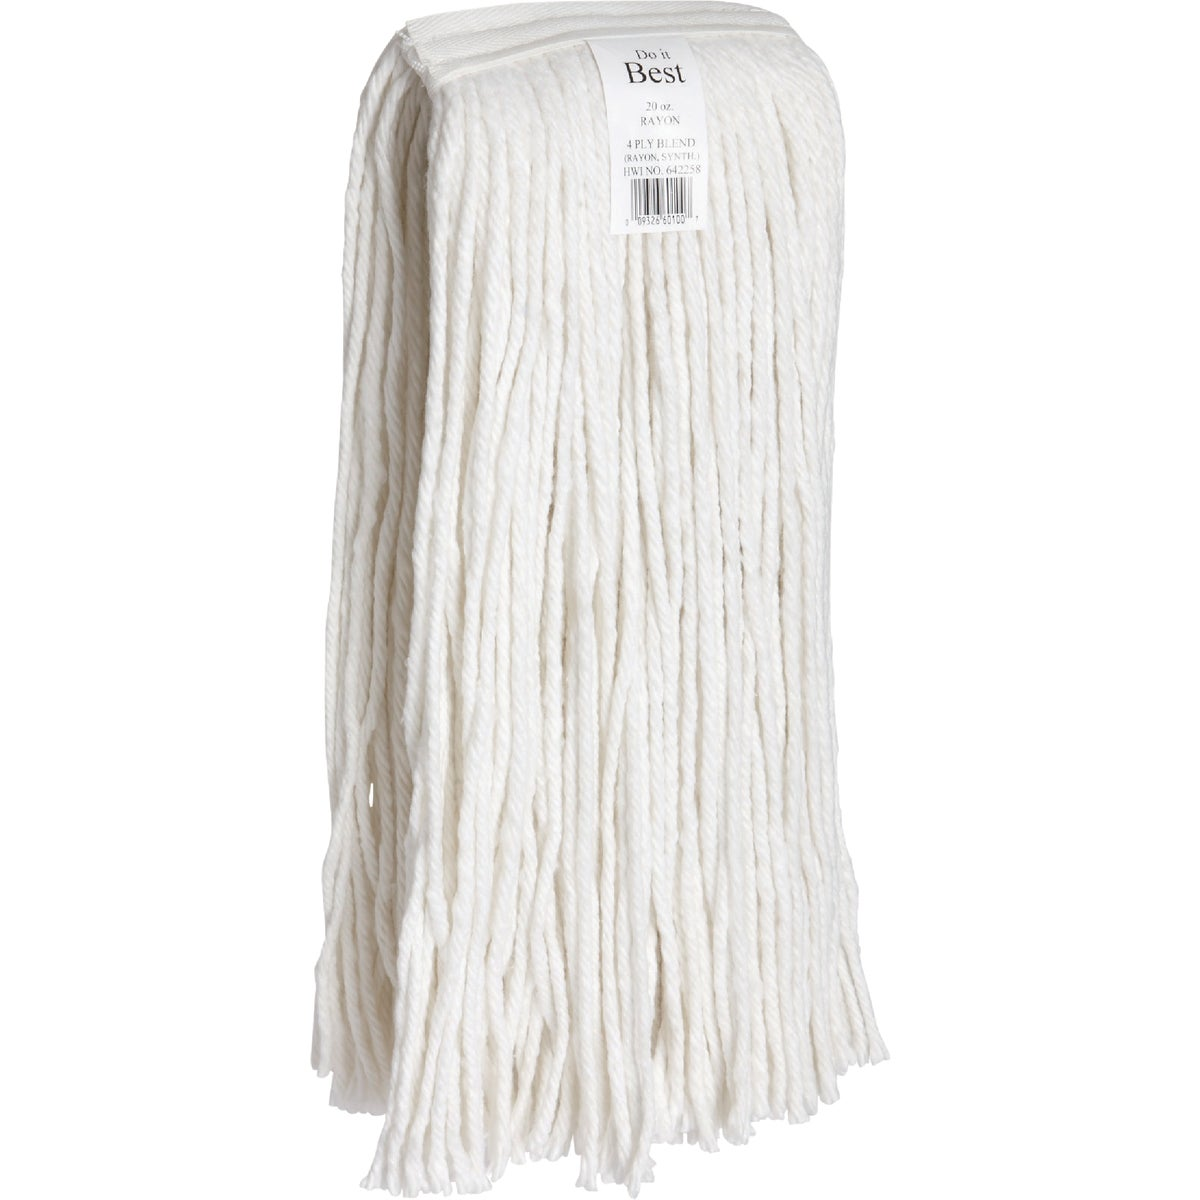 20OZ RAYON MOP - 642258 by Nexstep Commercial